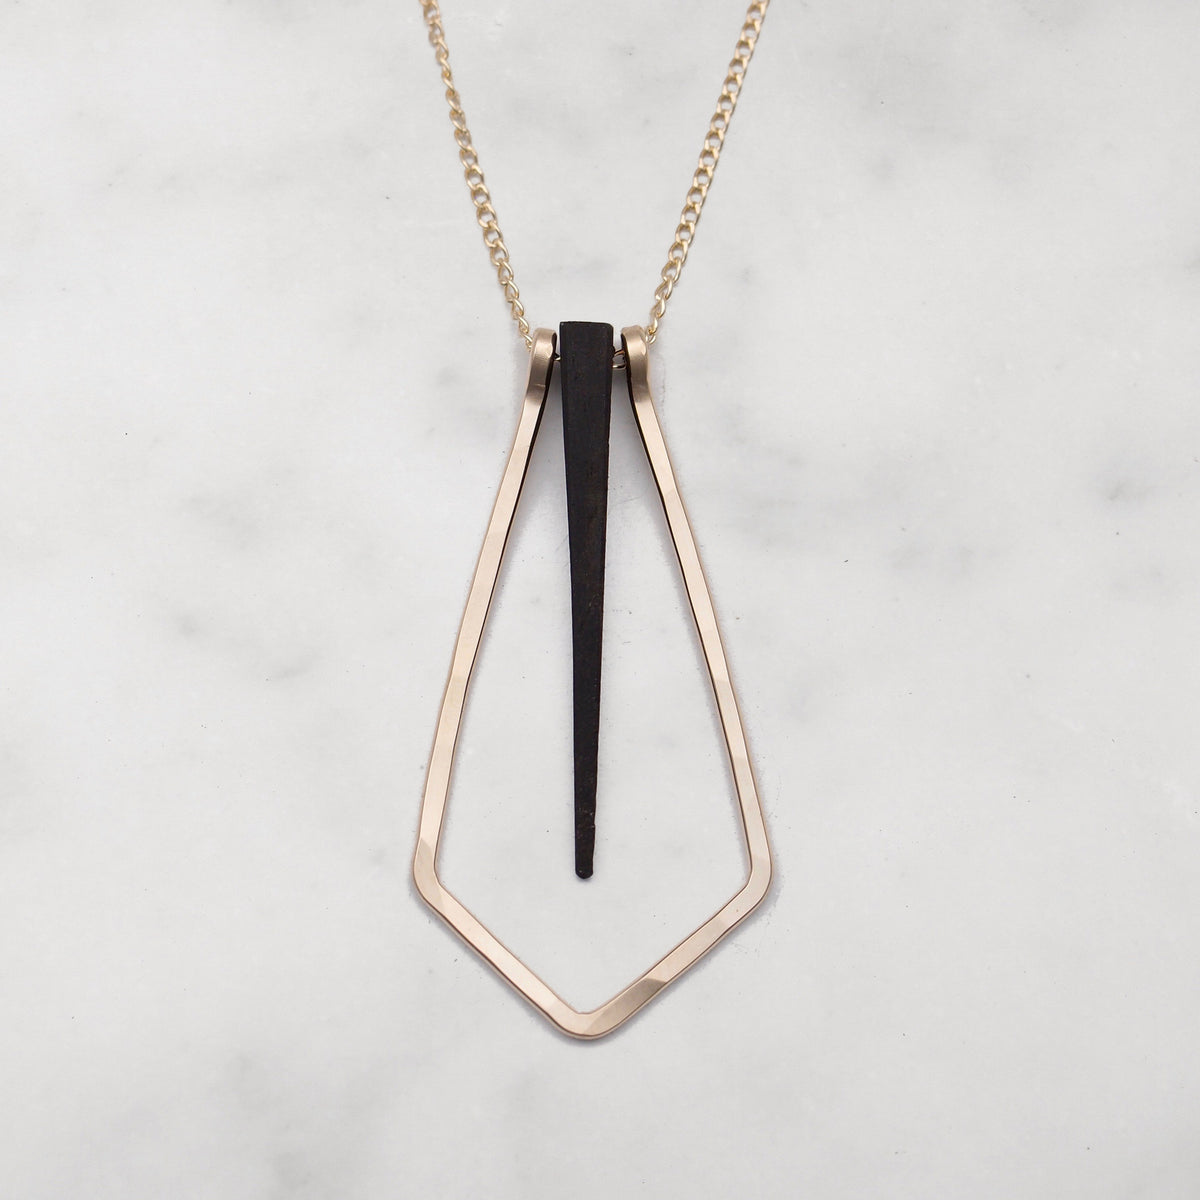 Tai Necklace - 14k Gold Fill